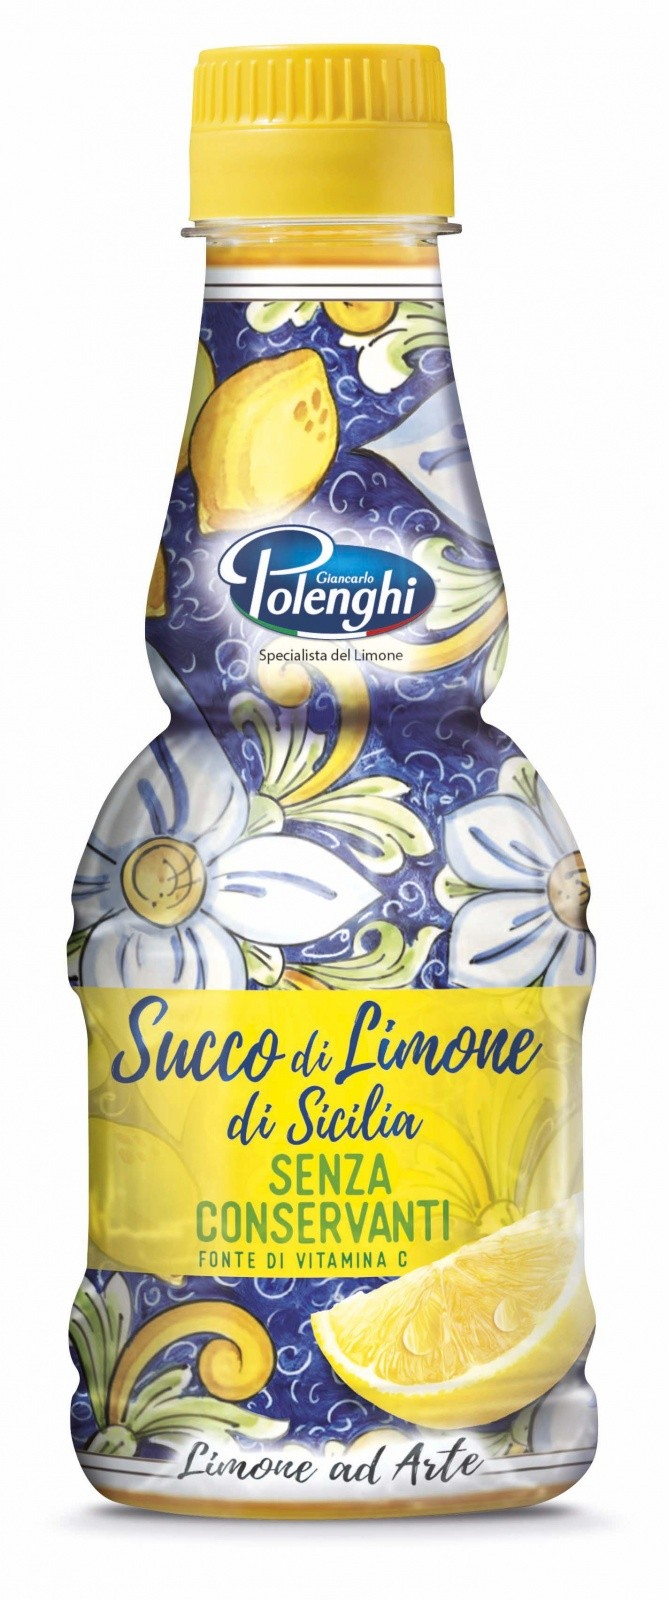 G.POLENGHI - THE FIRST AND UNIQUE PRESERVATIVE FREE LEMON JUICE IN RPET BOTTLE